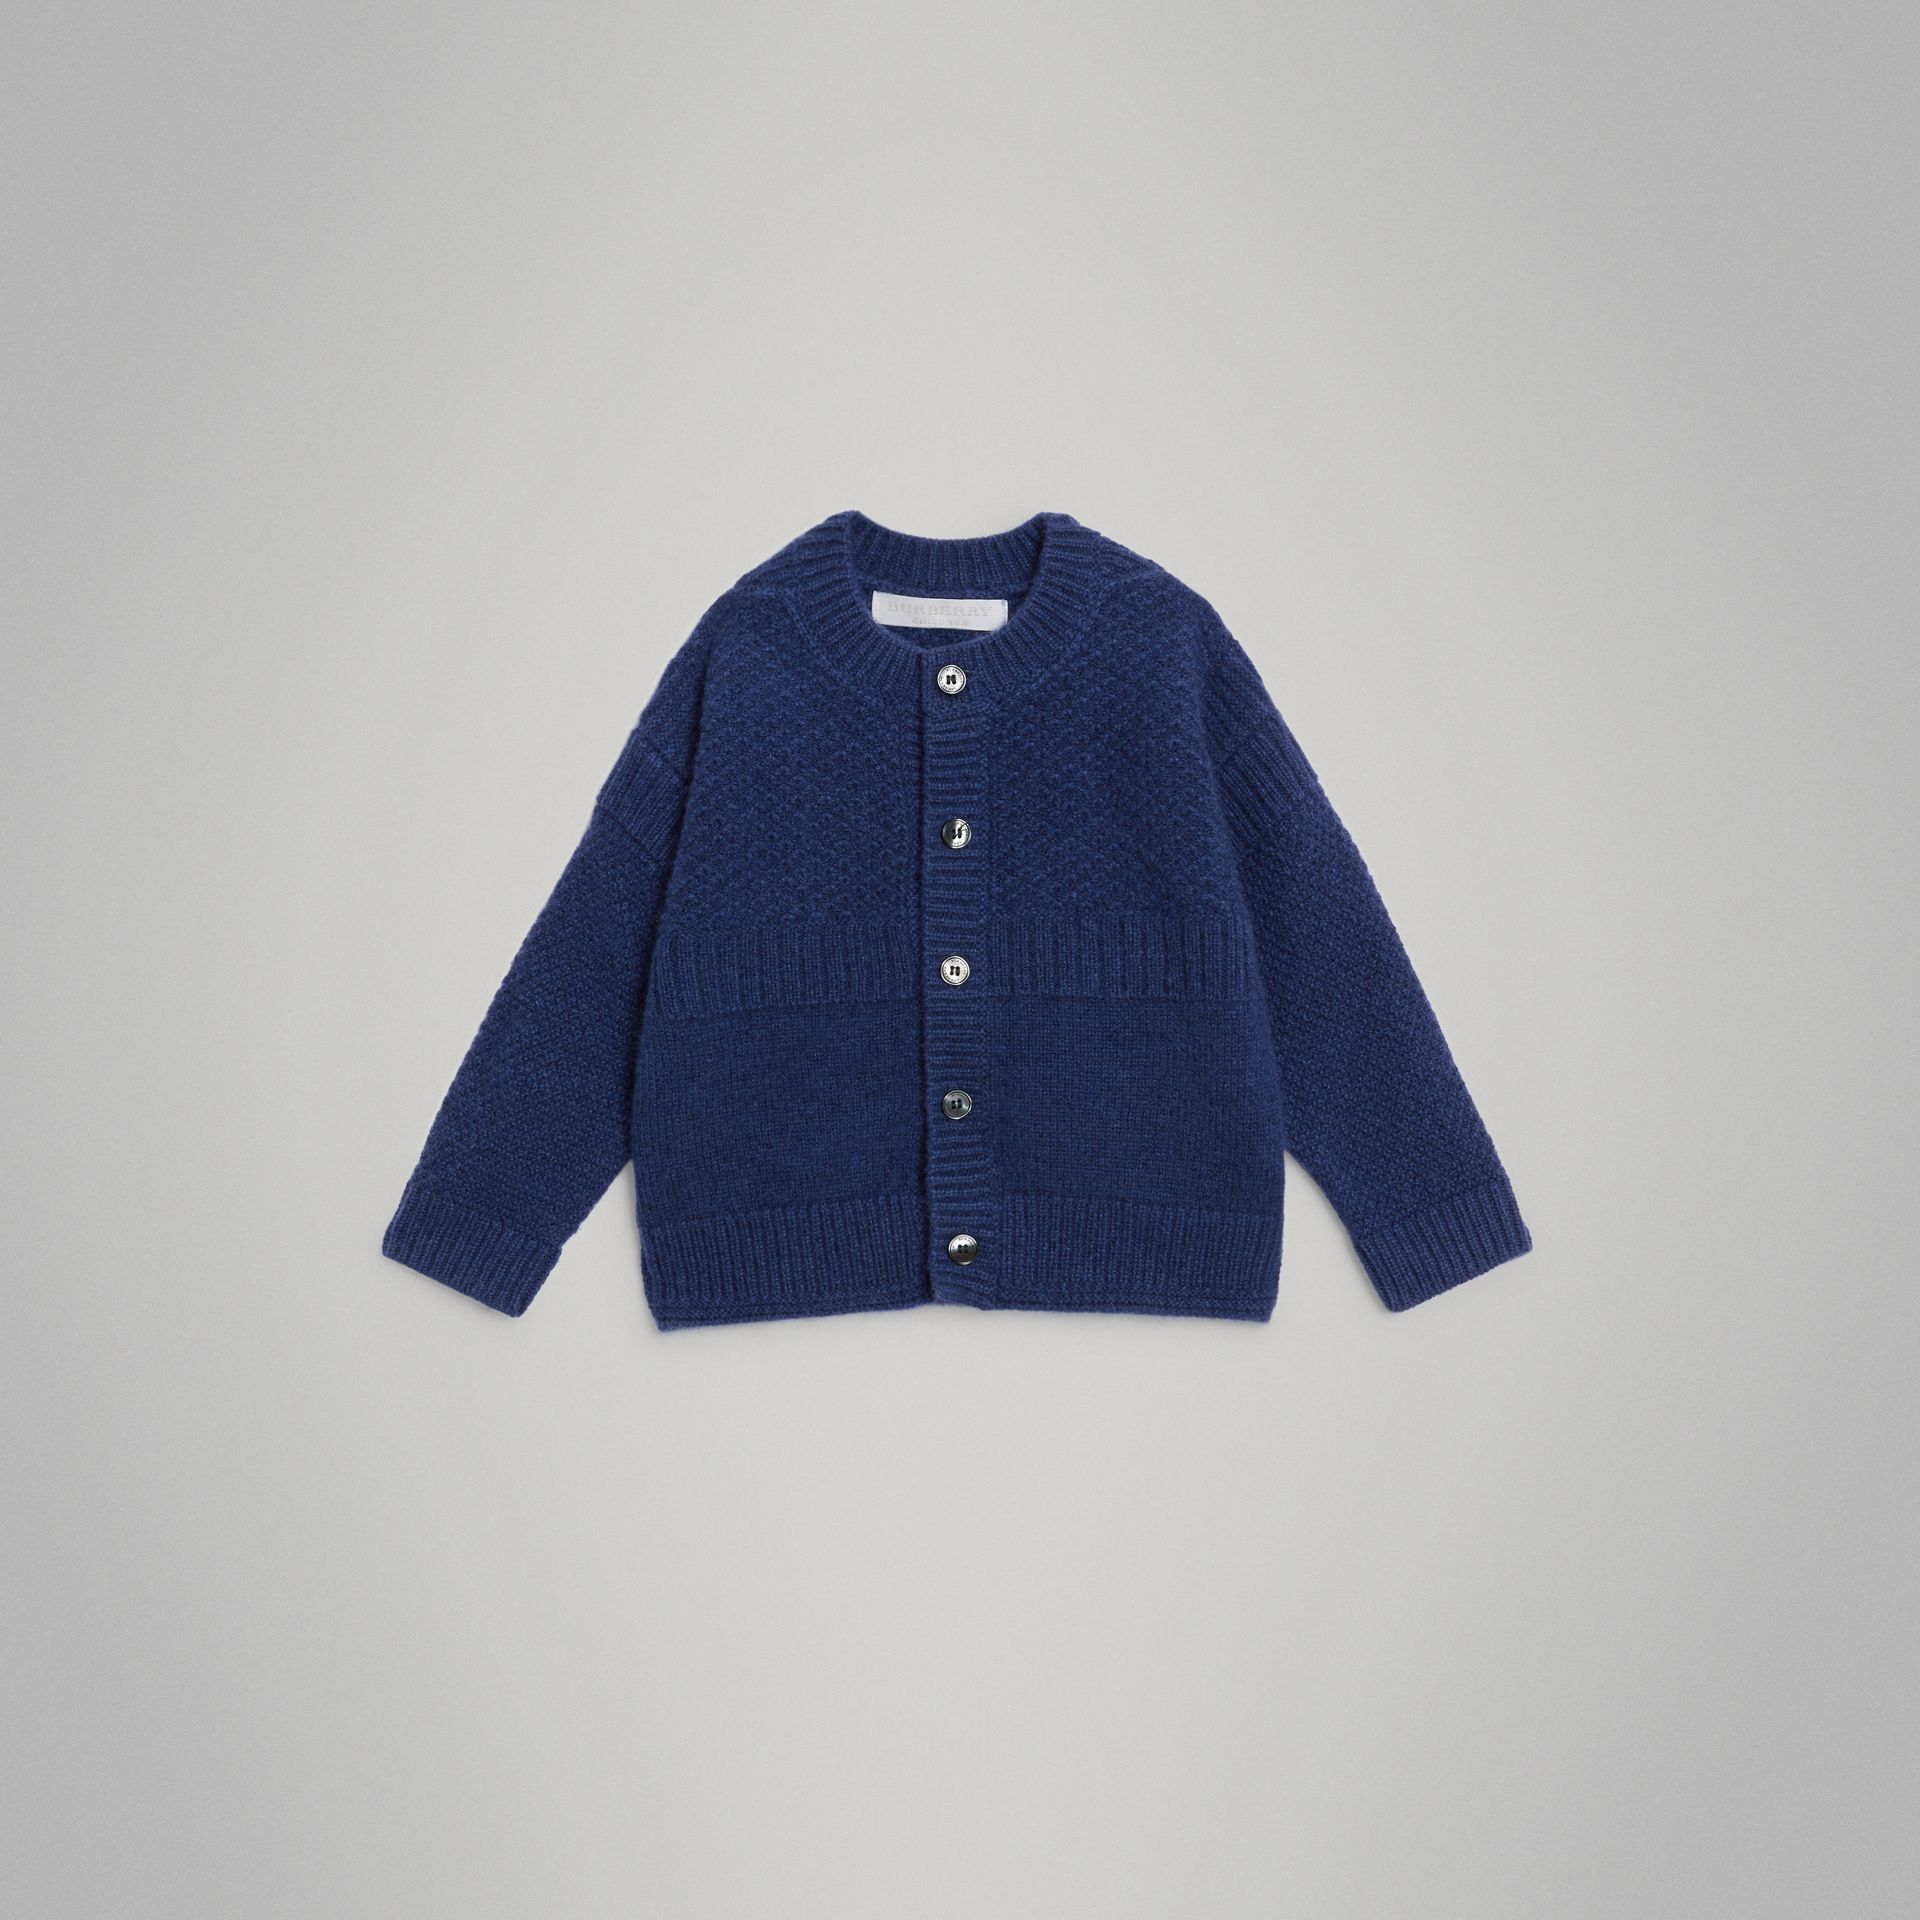 Cashmere and Cotton Three-piece Baby Gift Set in Bright Navy - Children | Burberry - gallery image 5